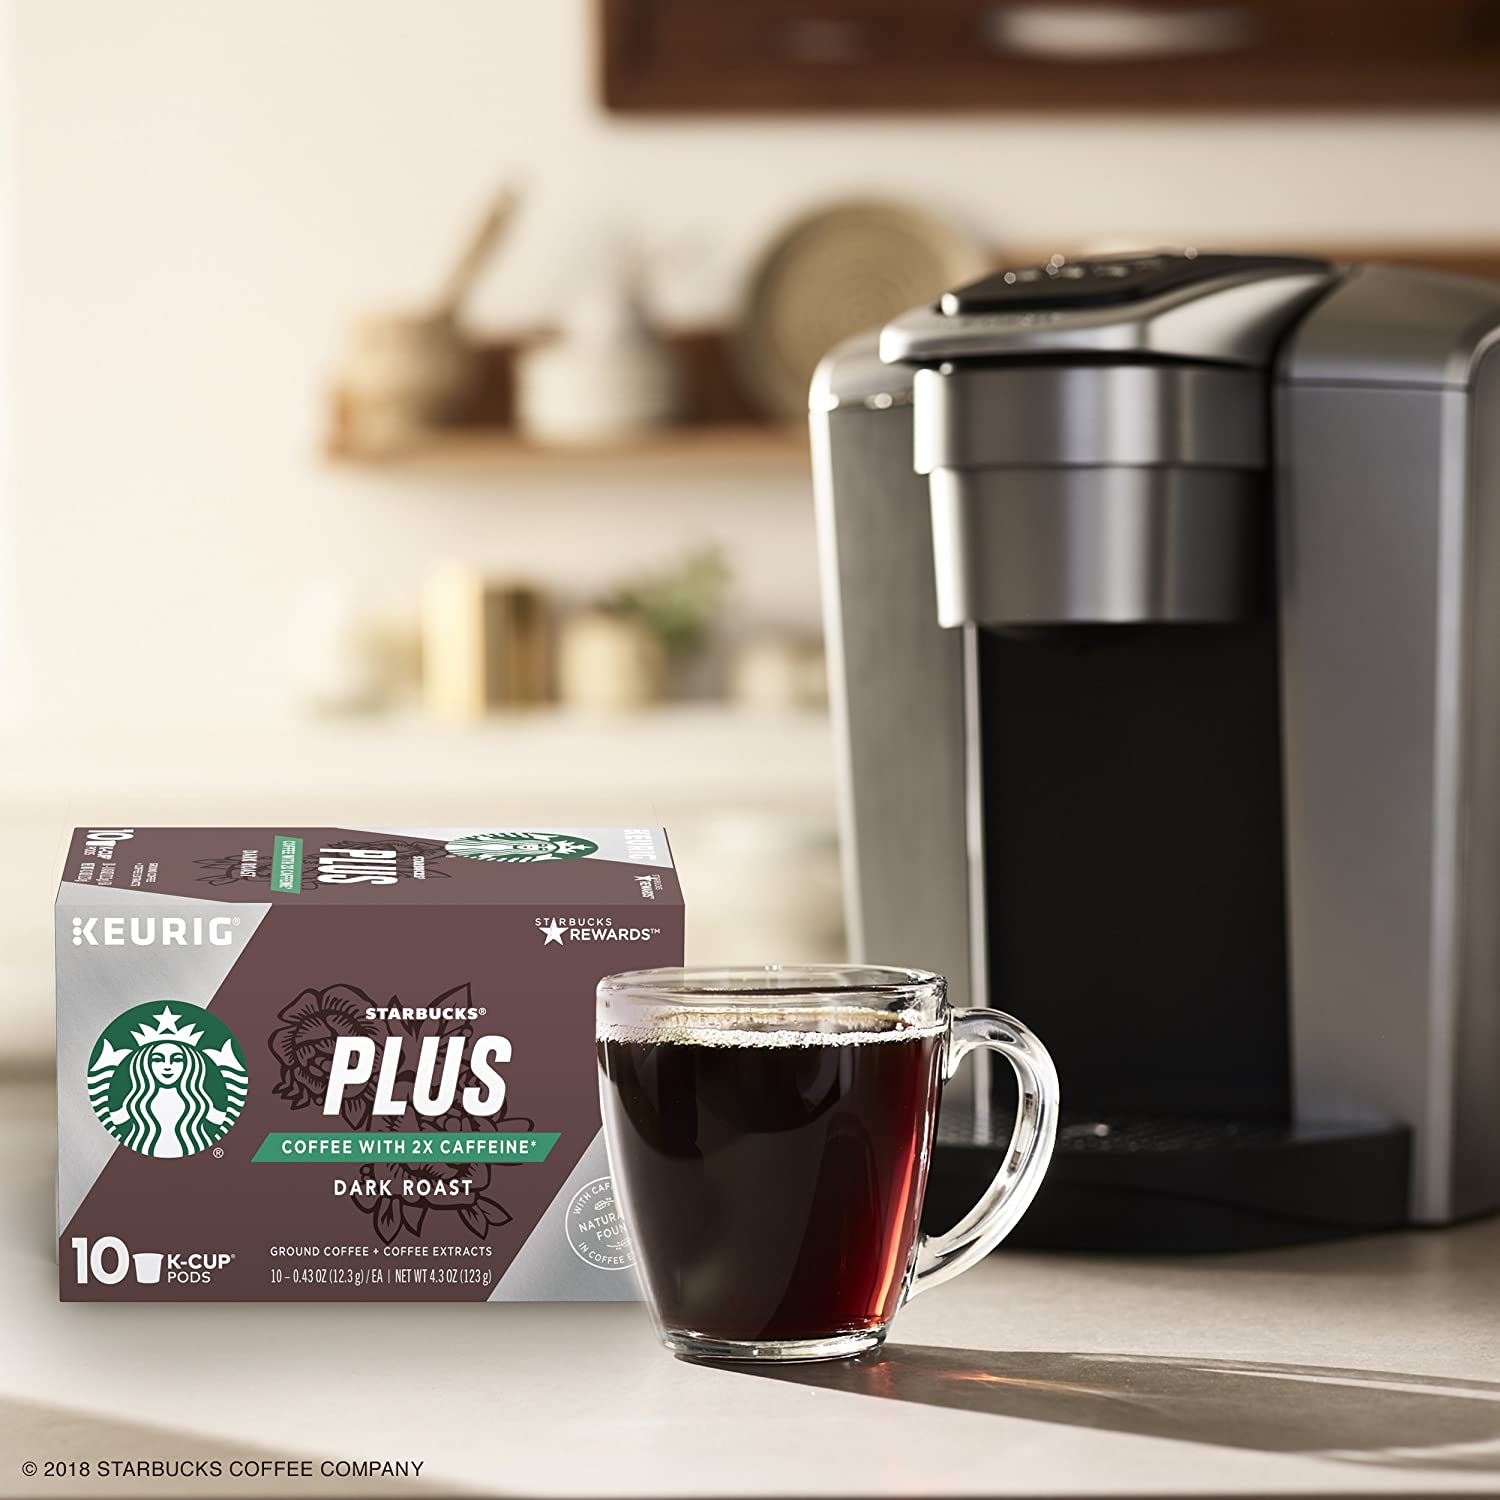 11c2dd01d88 Starbucks Plus Coffee 2X Caffeine Dark Roast Single Cup Coffee for Keurig  Brewers, 6 Boxes of 10 (60 Total K-Cup Pods): Amazon.com: Grocery & Gourmet  Food